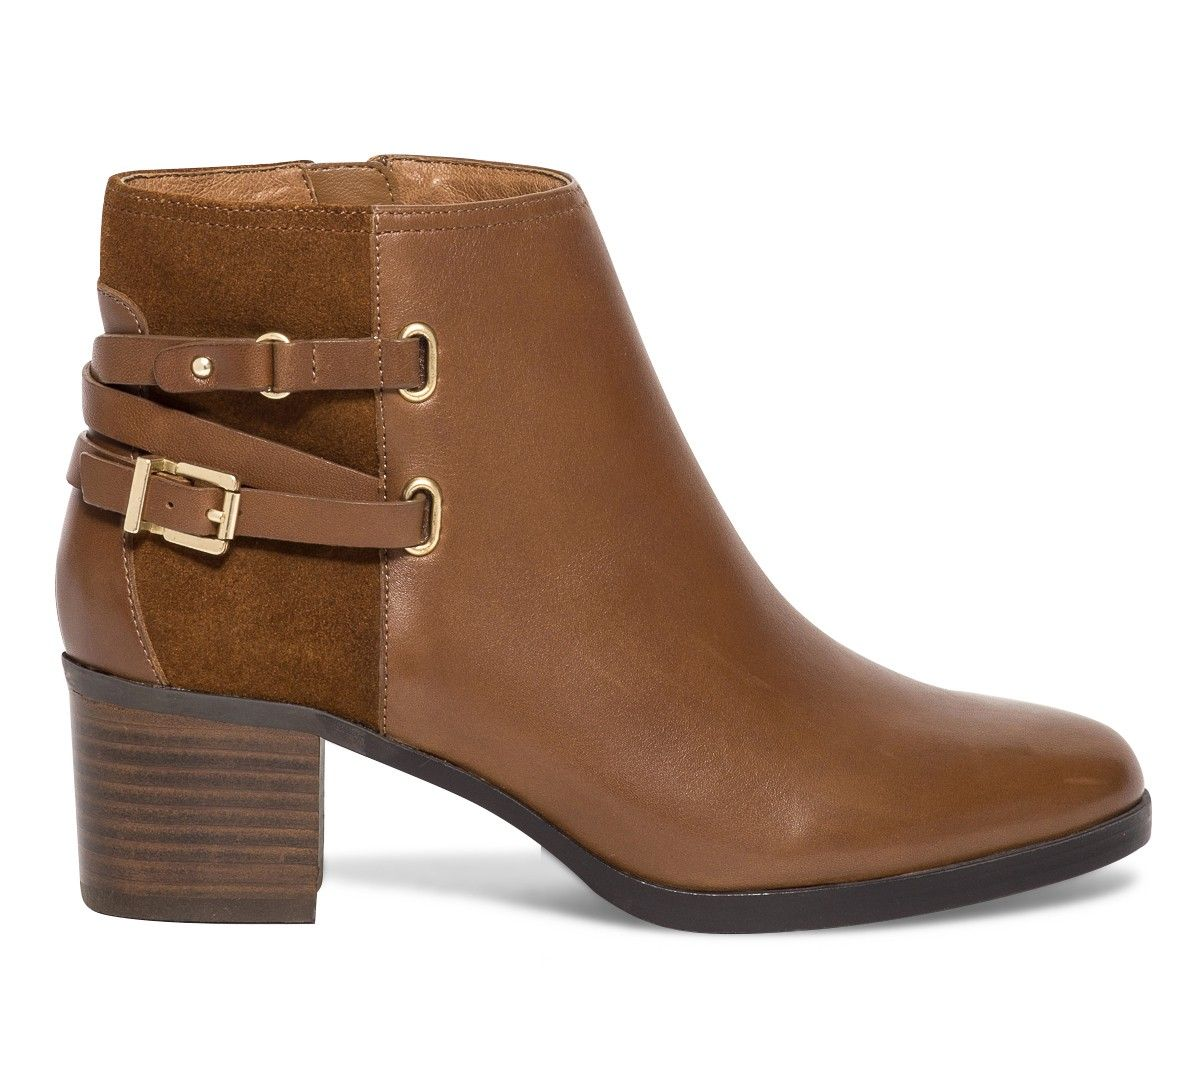 f7429ba59687 Boots boucles cuir camel - Boots   bottines - Chaussures .